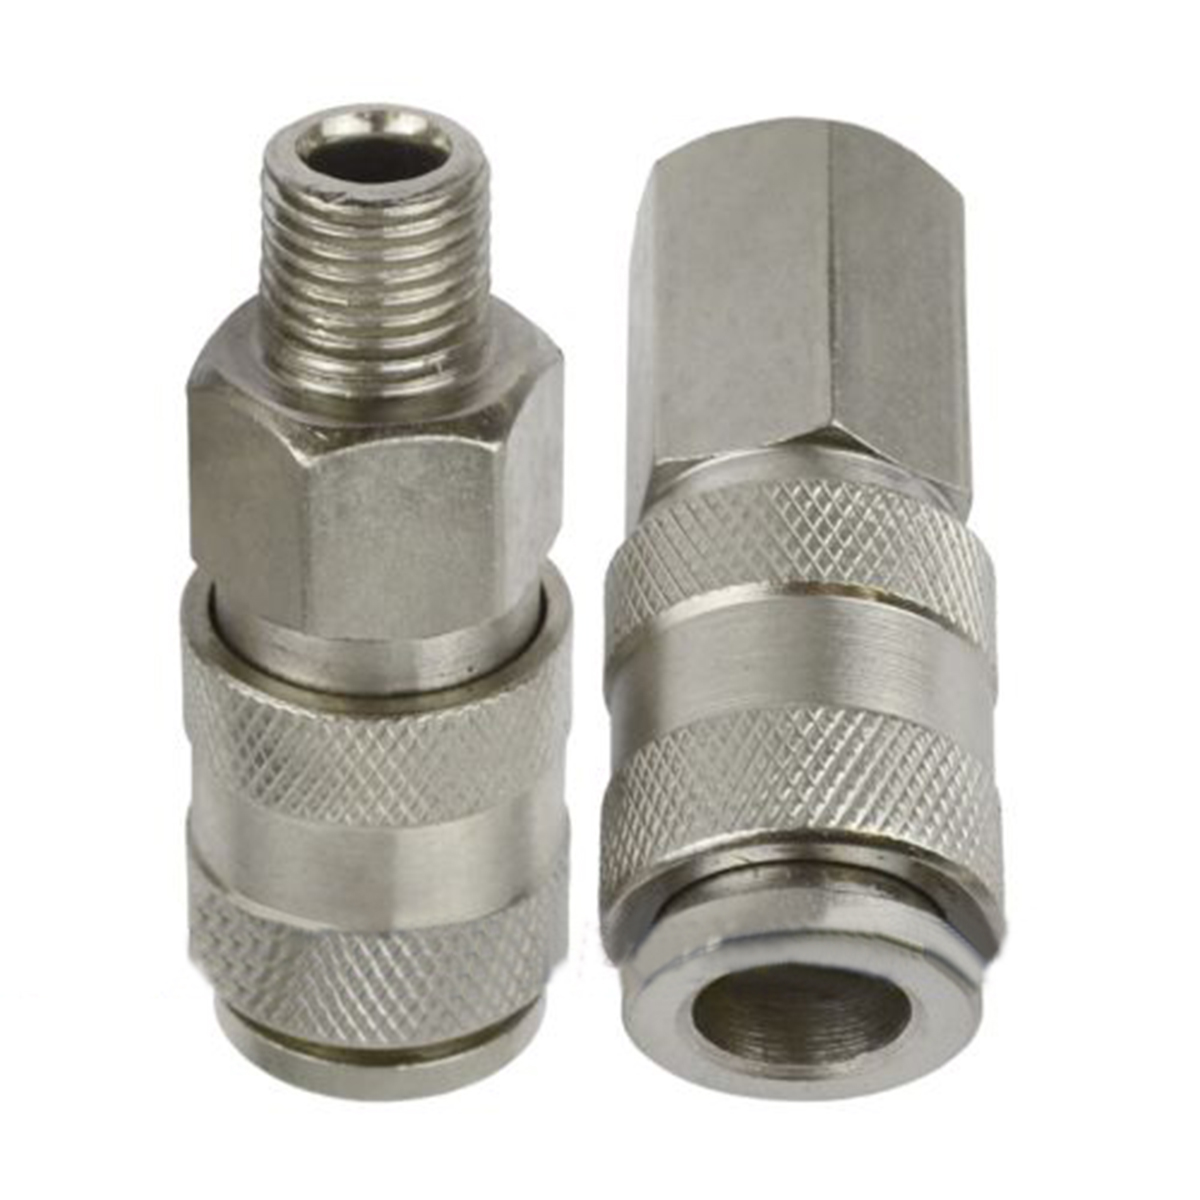 2pcs Euro Air Line Hose Compressor Connector Female/Male 1/4 BSP Thread Female Quick Release Fittings Mayitr For Home Tools 6pcs mayitr air line compressor connector euro fittings quick release coupling set with 1 4 bsp thread